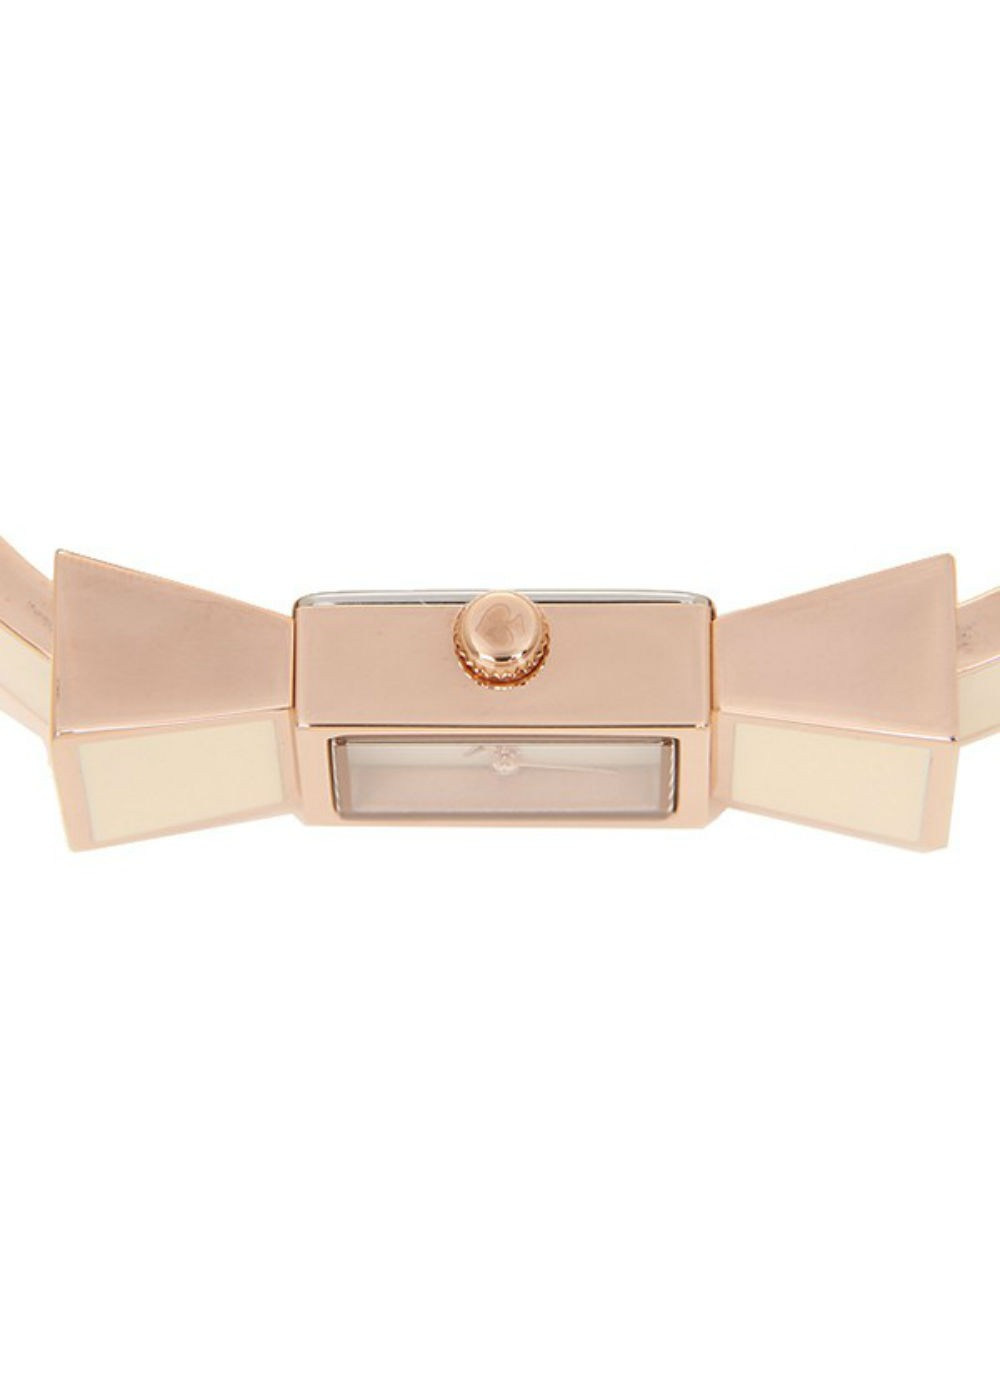 【kate spade new york】腕時計|アイボリー|レディース腕時計|kate spade new york (C)|最大39%OFF